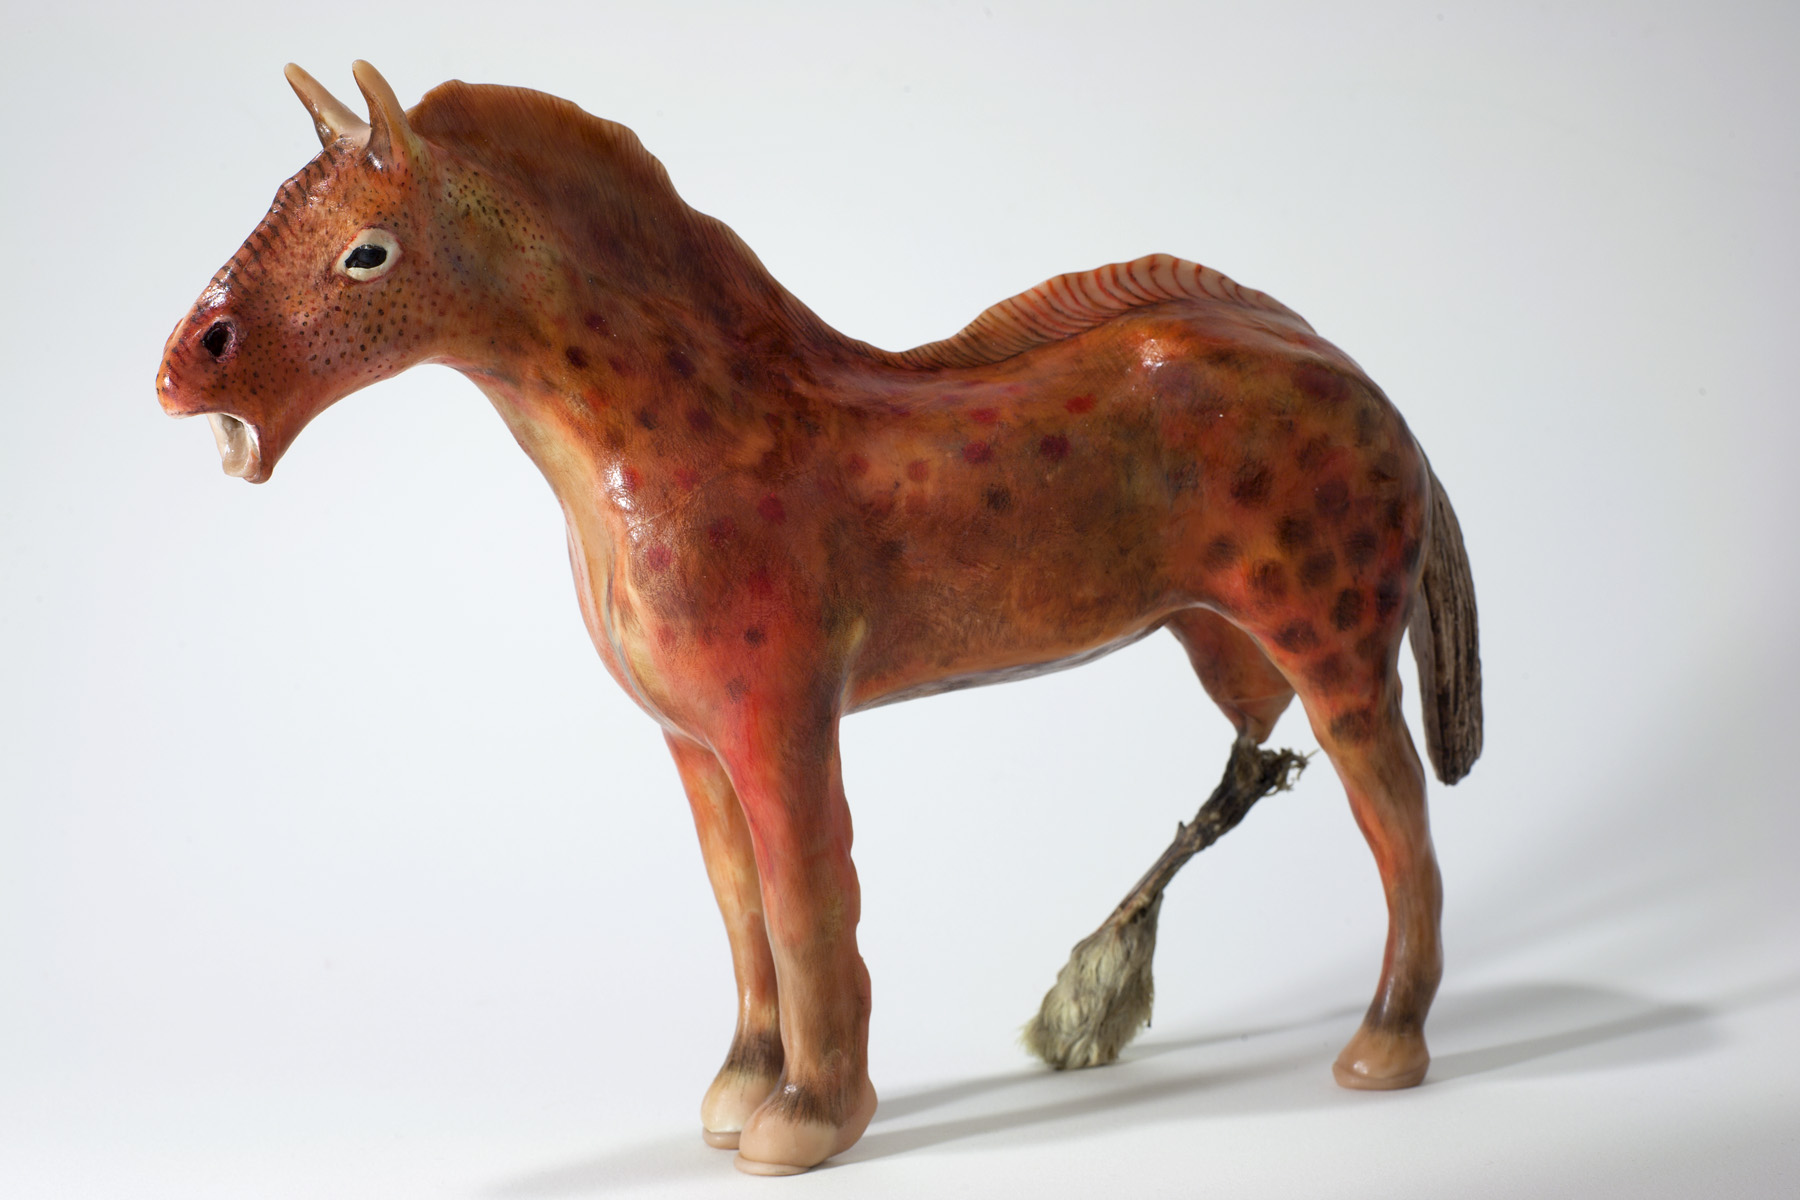 "Rabbit Foot Red, 2014, Mixed Media altered plastic toy horse, clay, colour pencil crayons, rabbit foot, 3"" x 9"" x 11"""